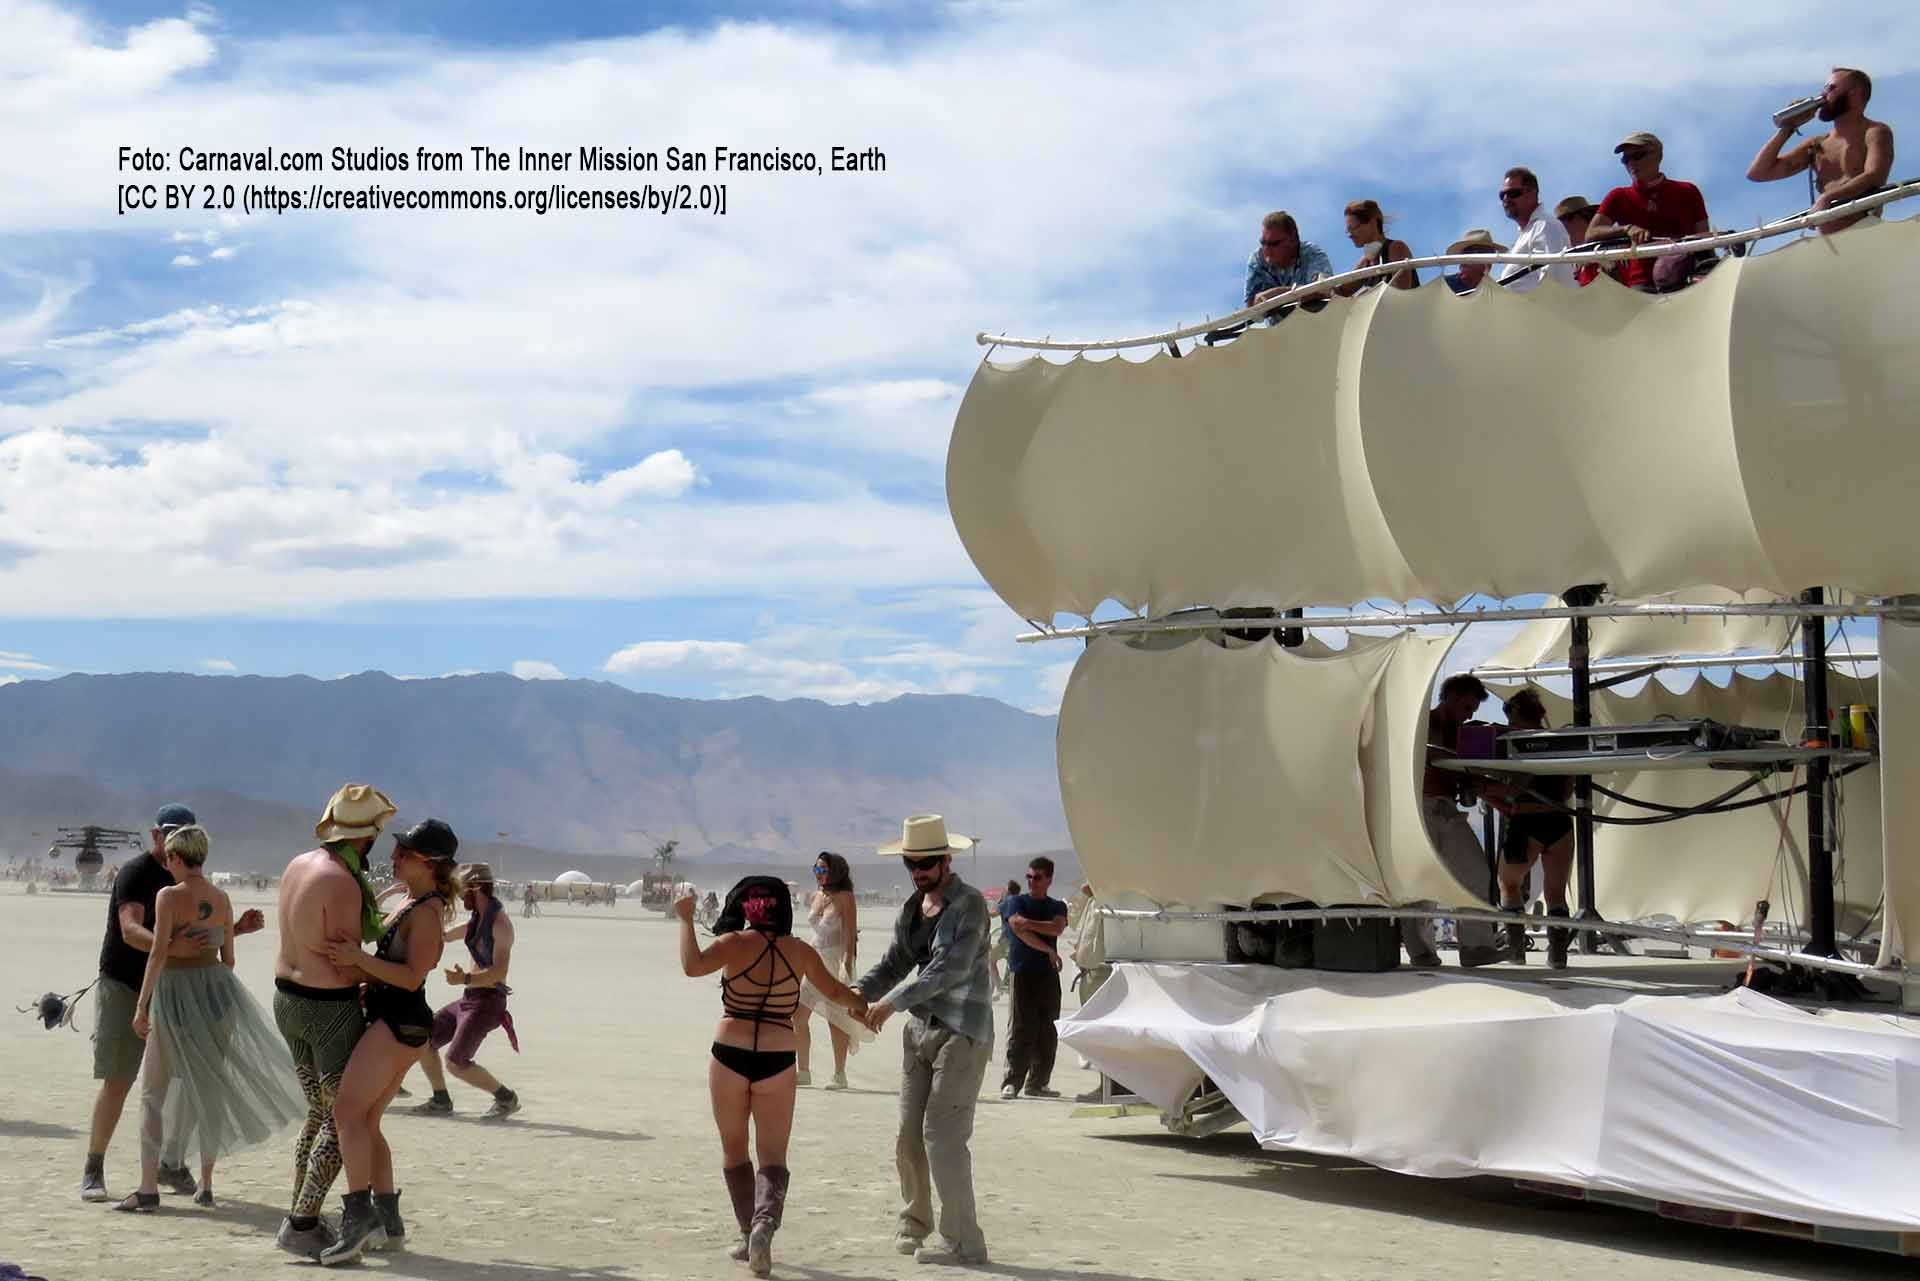 Burning Man 2016 / Foto: Carnaval.com Studios from The Inner Mission San Francisco, Earth [CC BY 2.0 (https://creativecommons.org/licenses/by/2.0)]